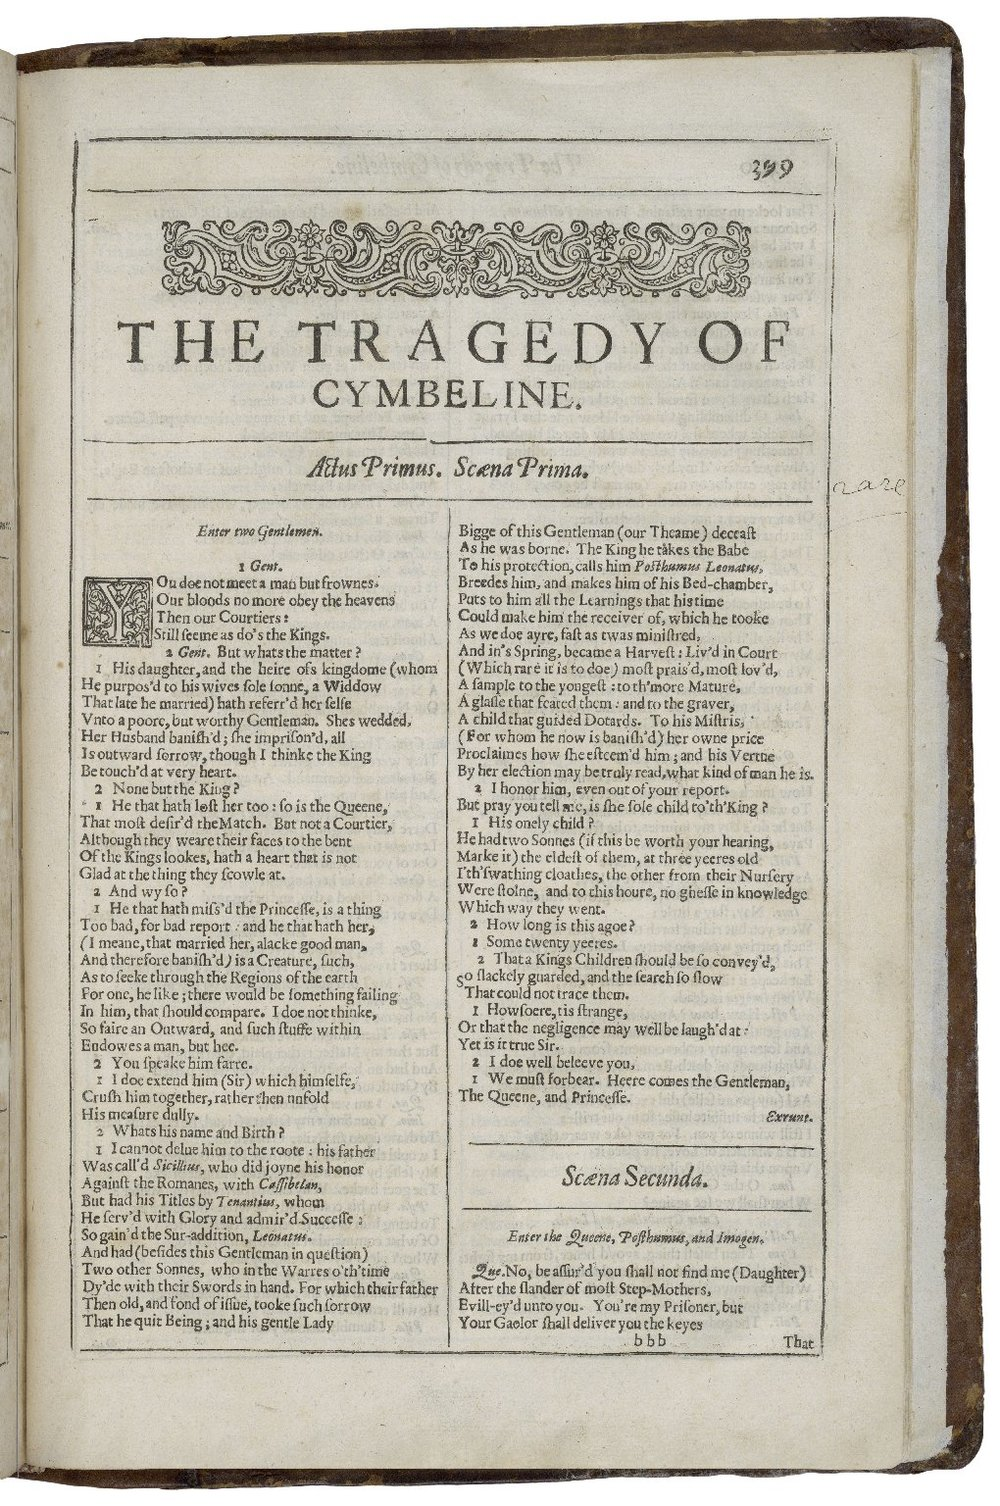 Cymbeline_Second_Folio_Title_Page.jpg